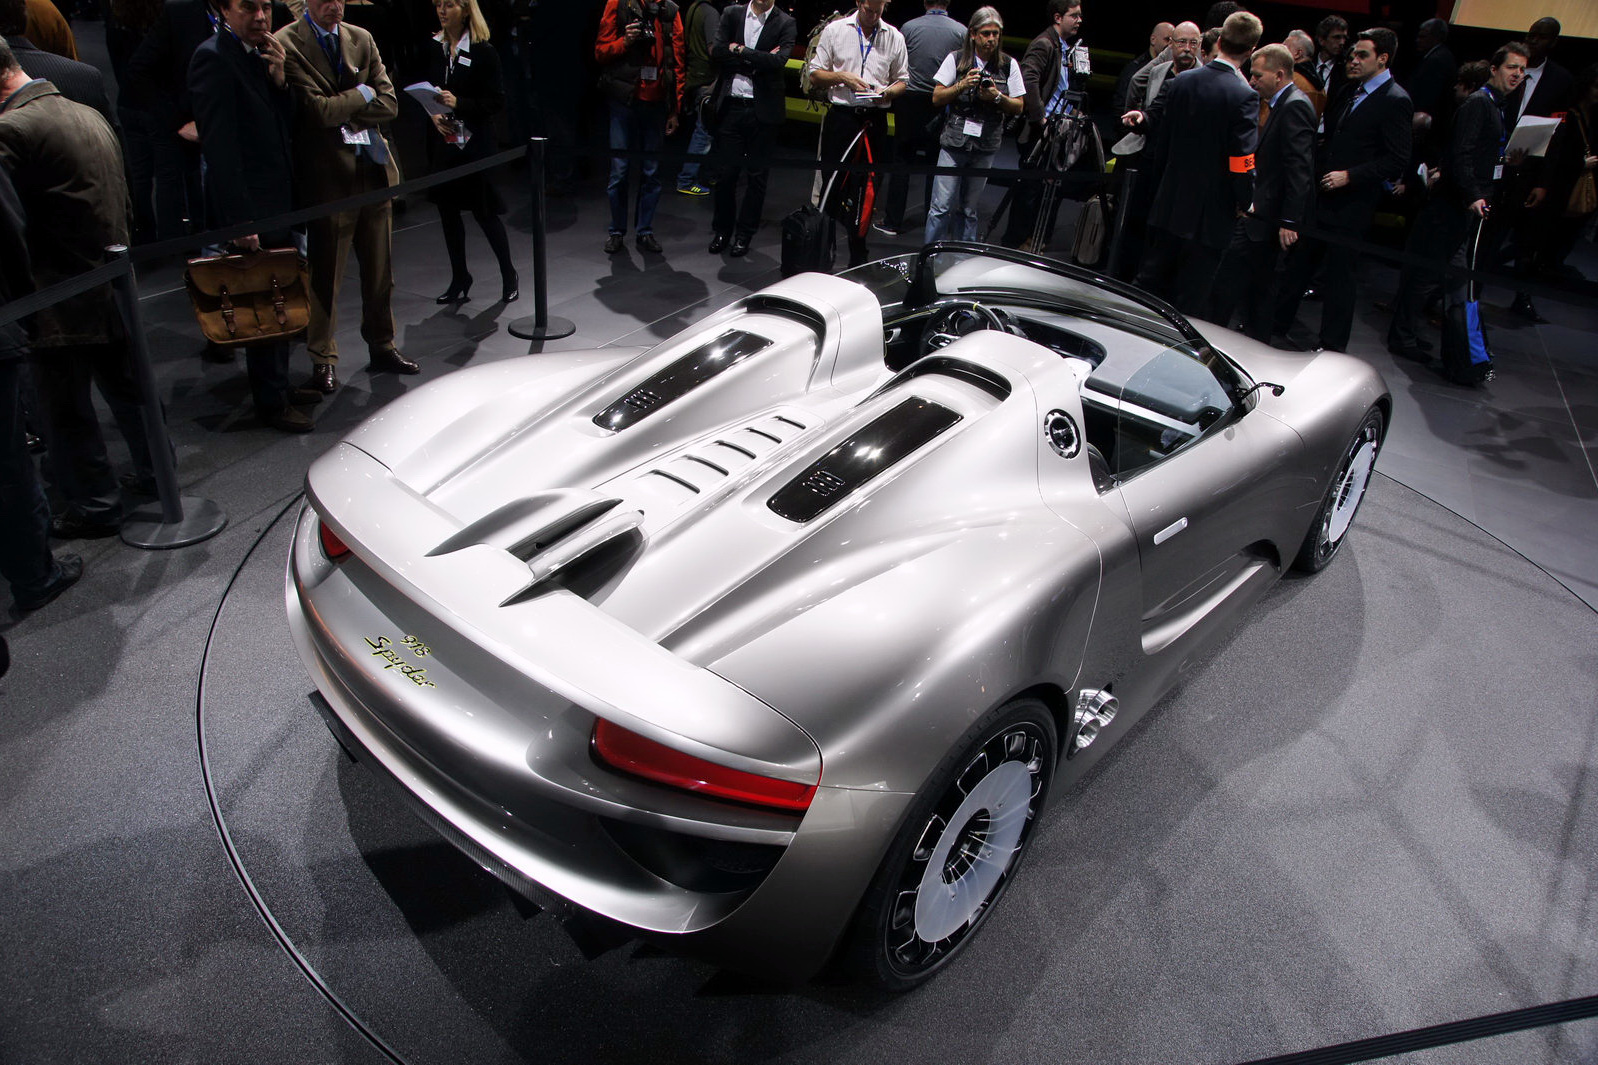 report claims porsche may price 918 spyder at 630 000 or 1 5 times higher than ferrari 599 gto. Black Bedroom Furniture Sets. Home Design Ideas